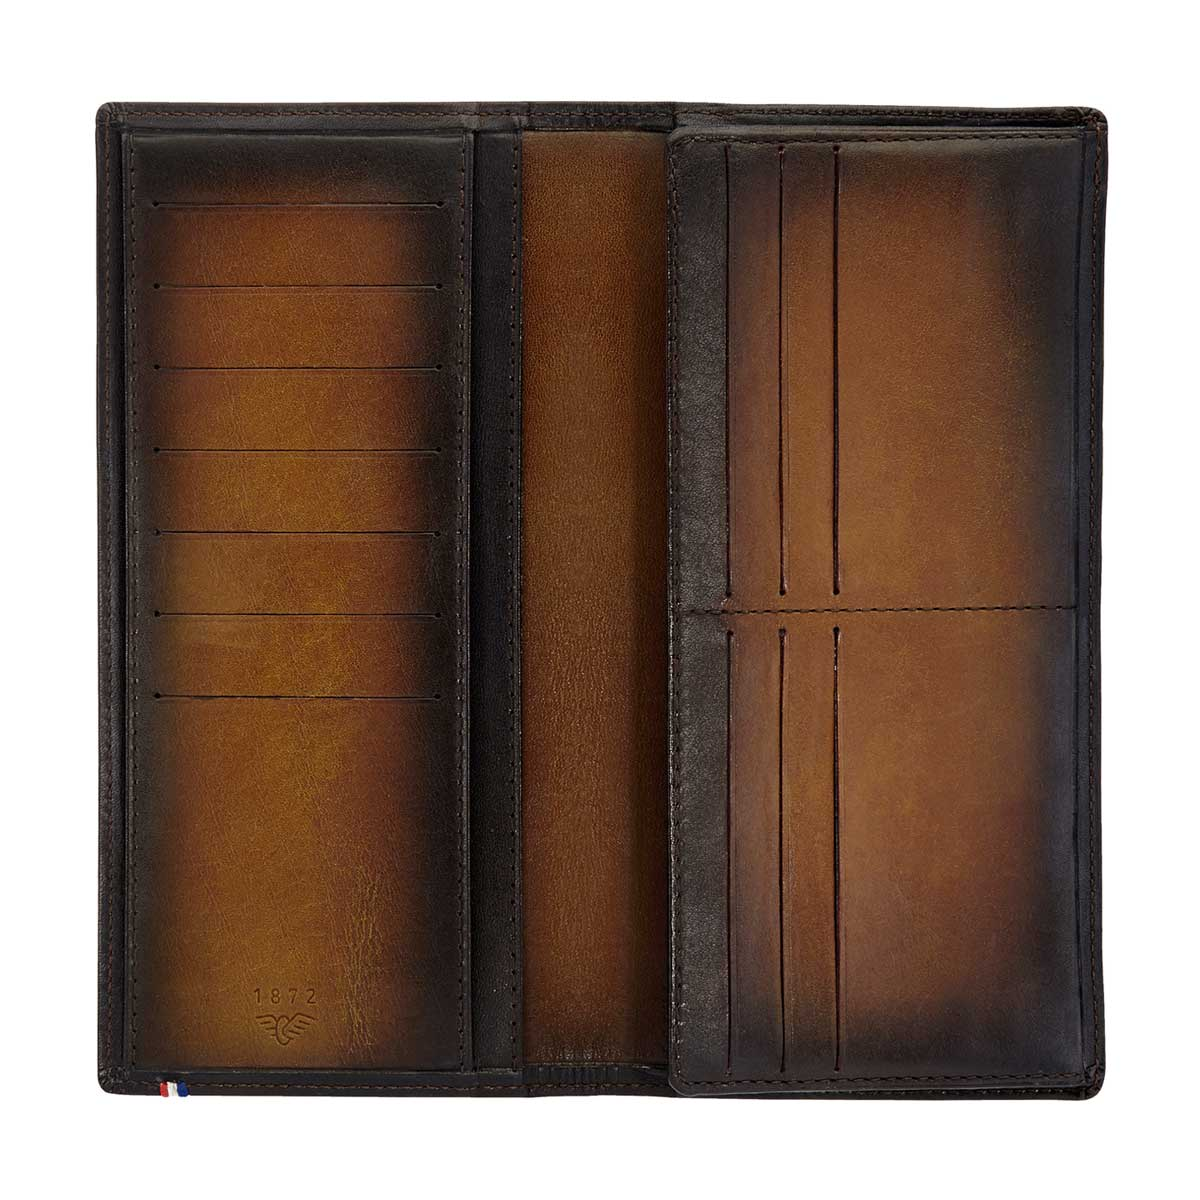 ST Dupont Atelier Long Leather Wallet - Tobacco Brown